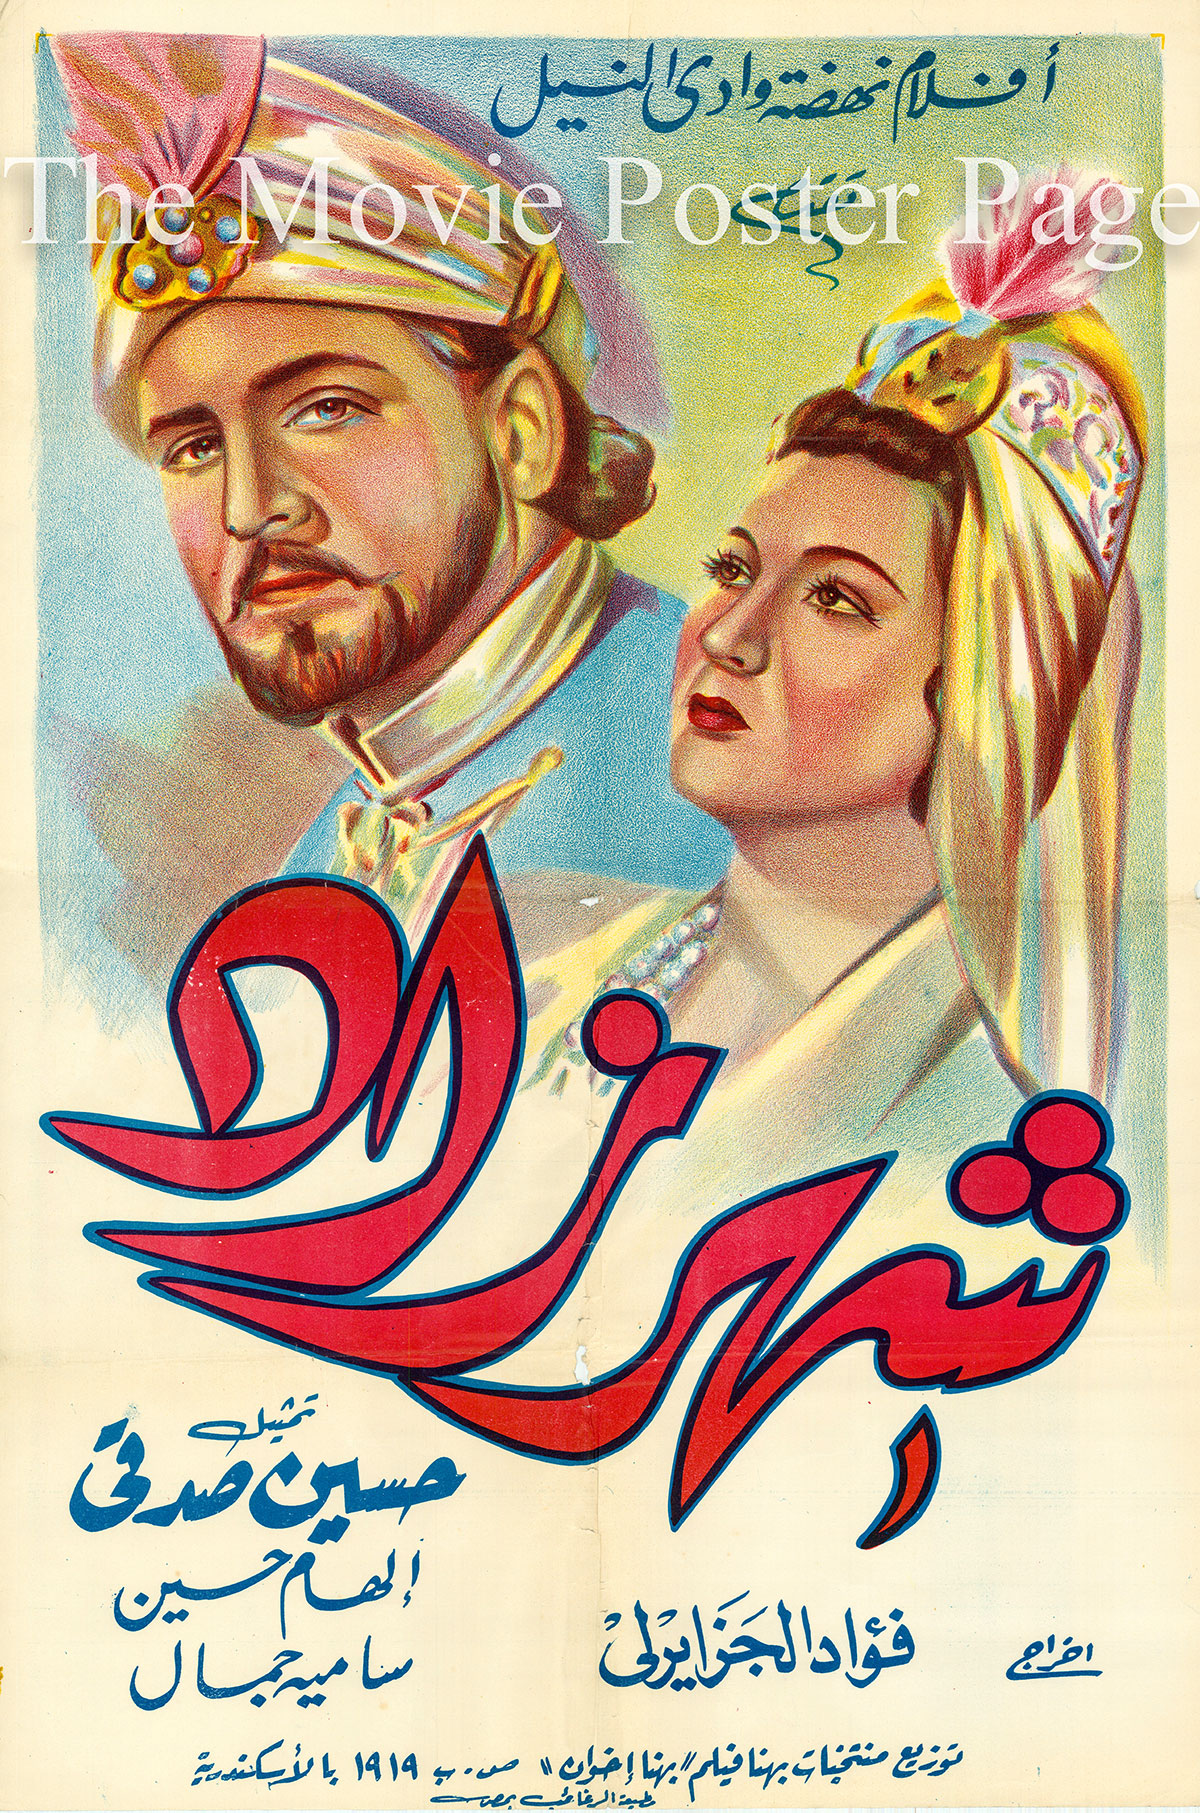 Pictured is an Egyptian promotional poster for the 1946 Fouad El Jazairly film Scheherezade starring Hussein Sedki.